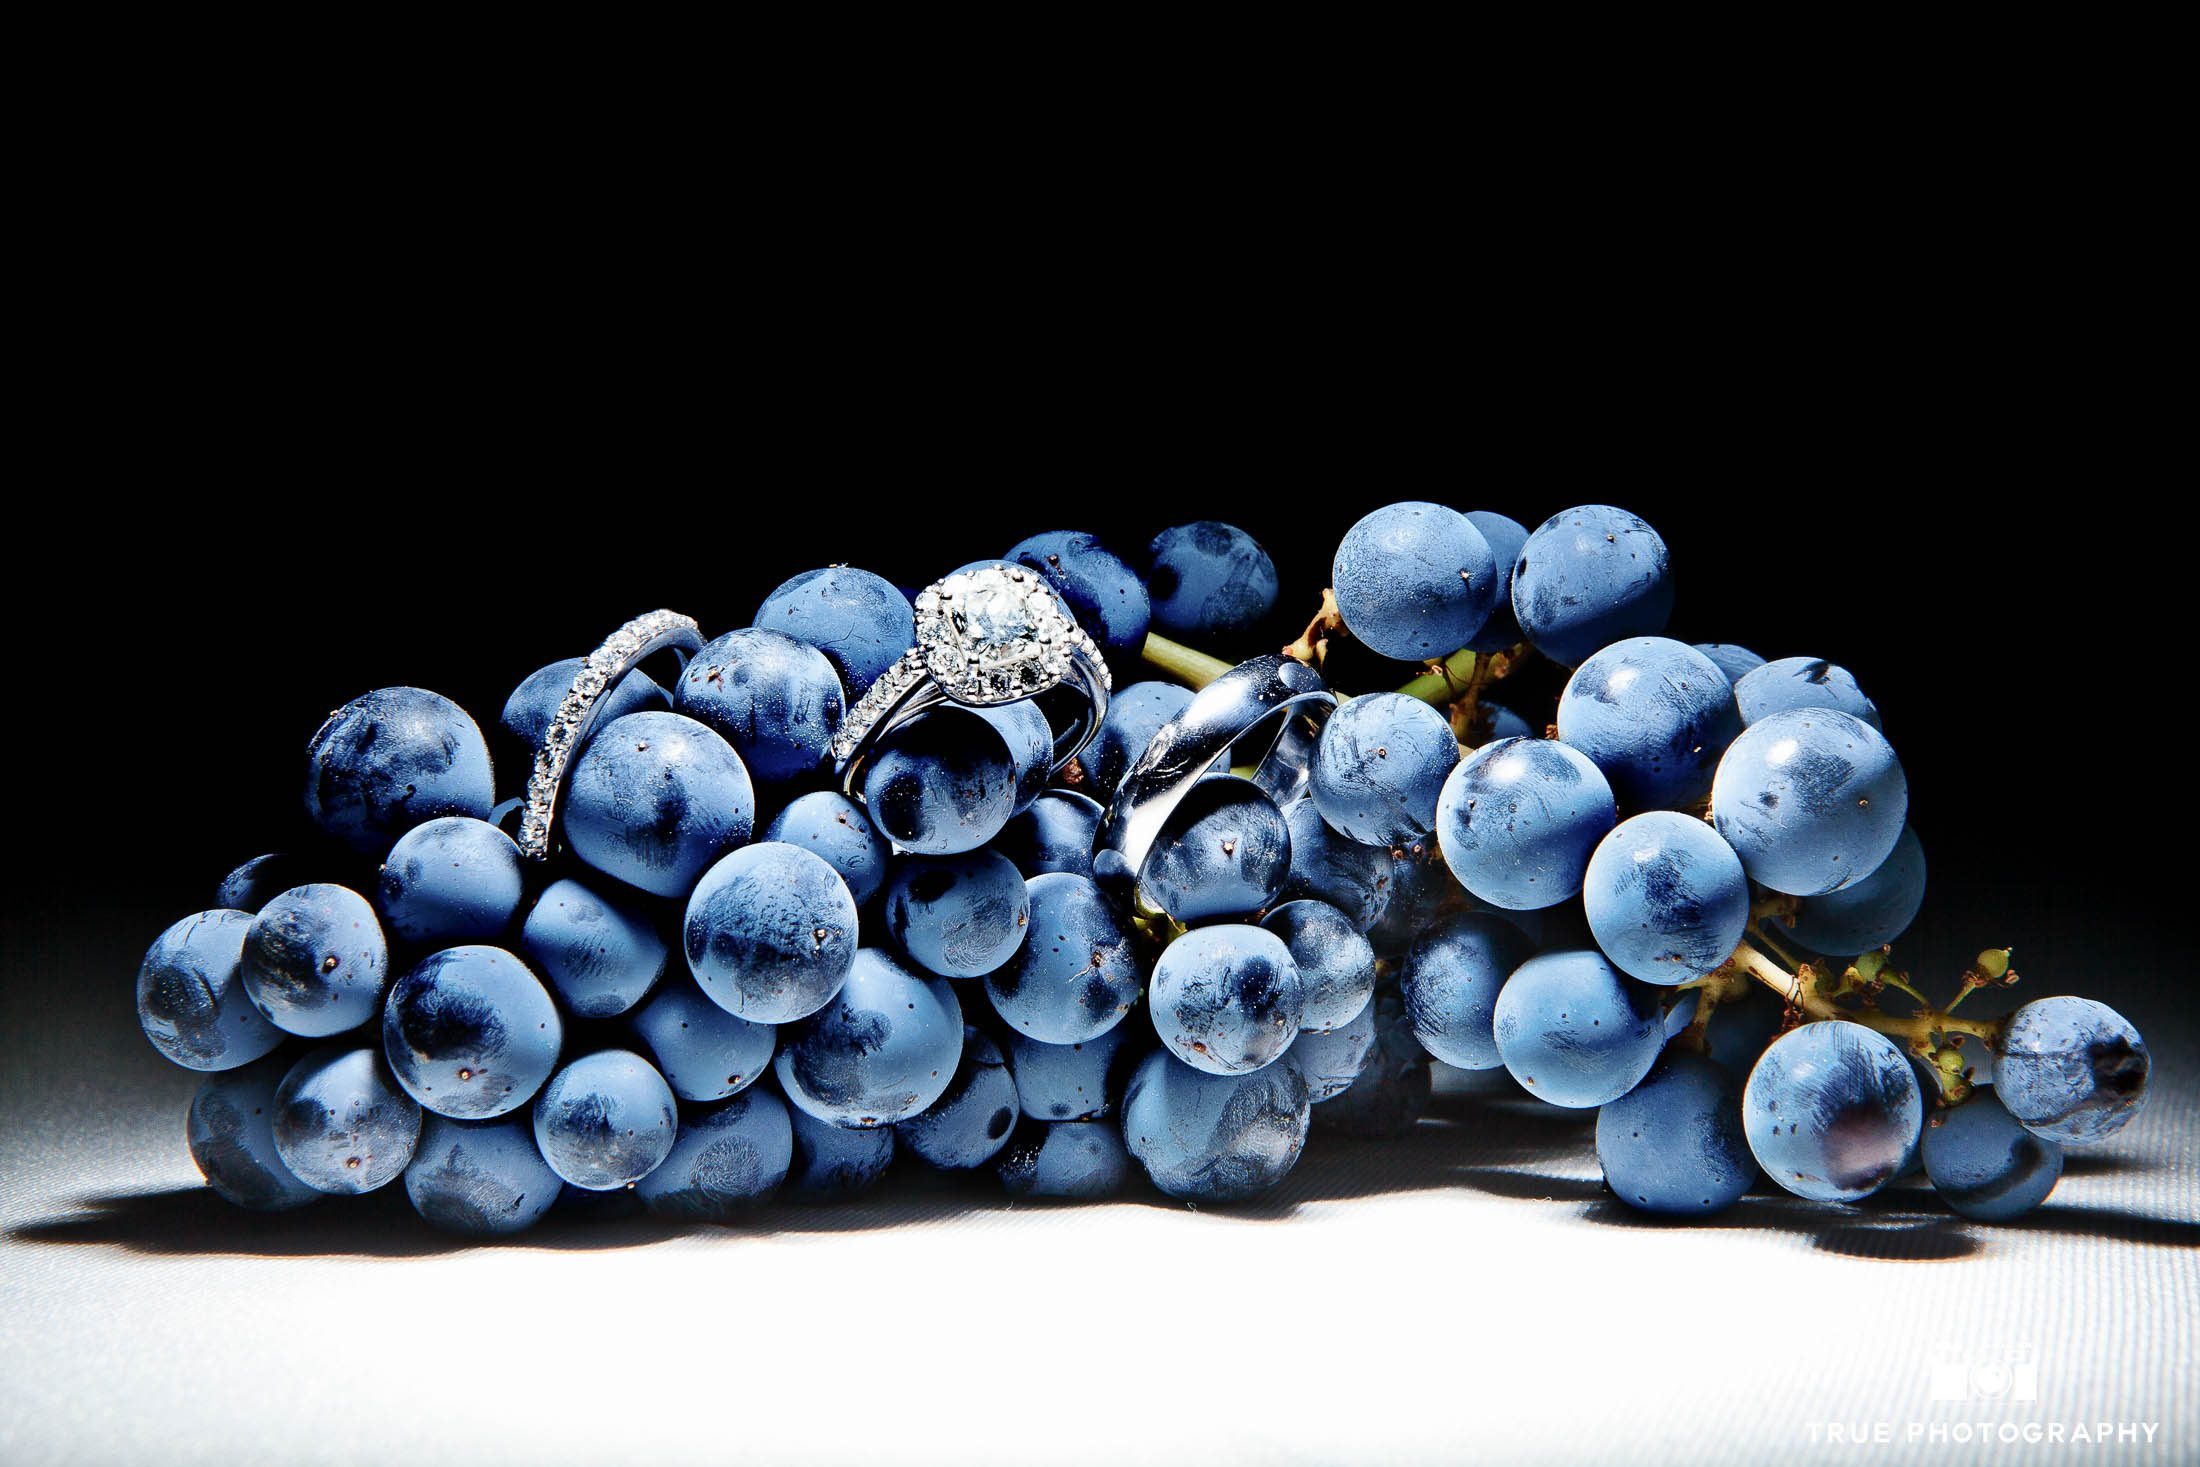 Creative Ring Photo with Grapes